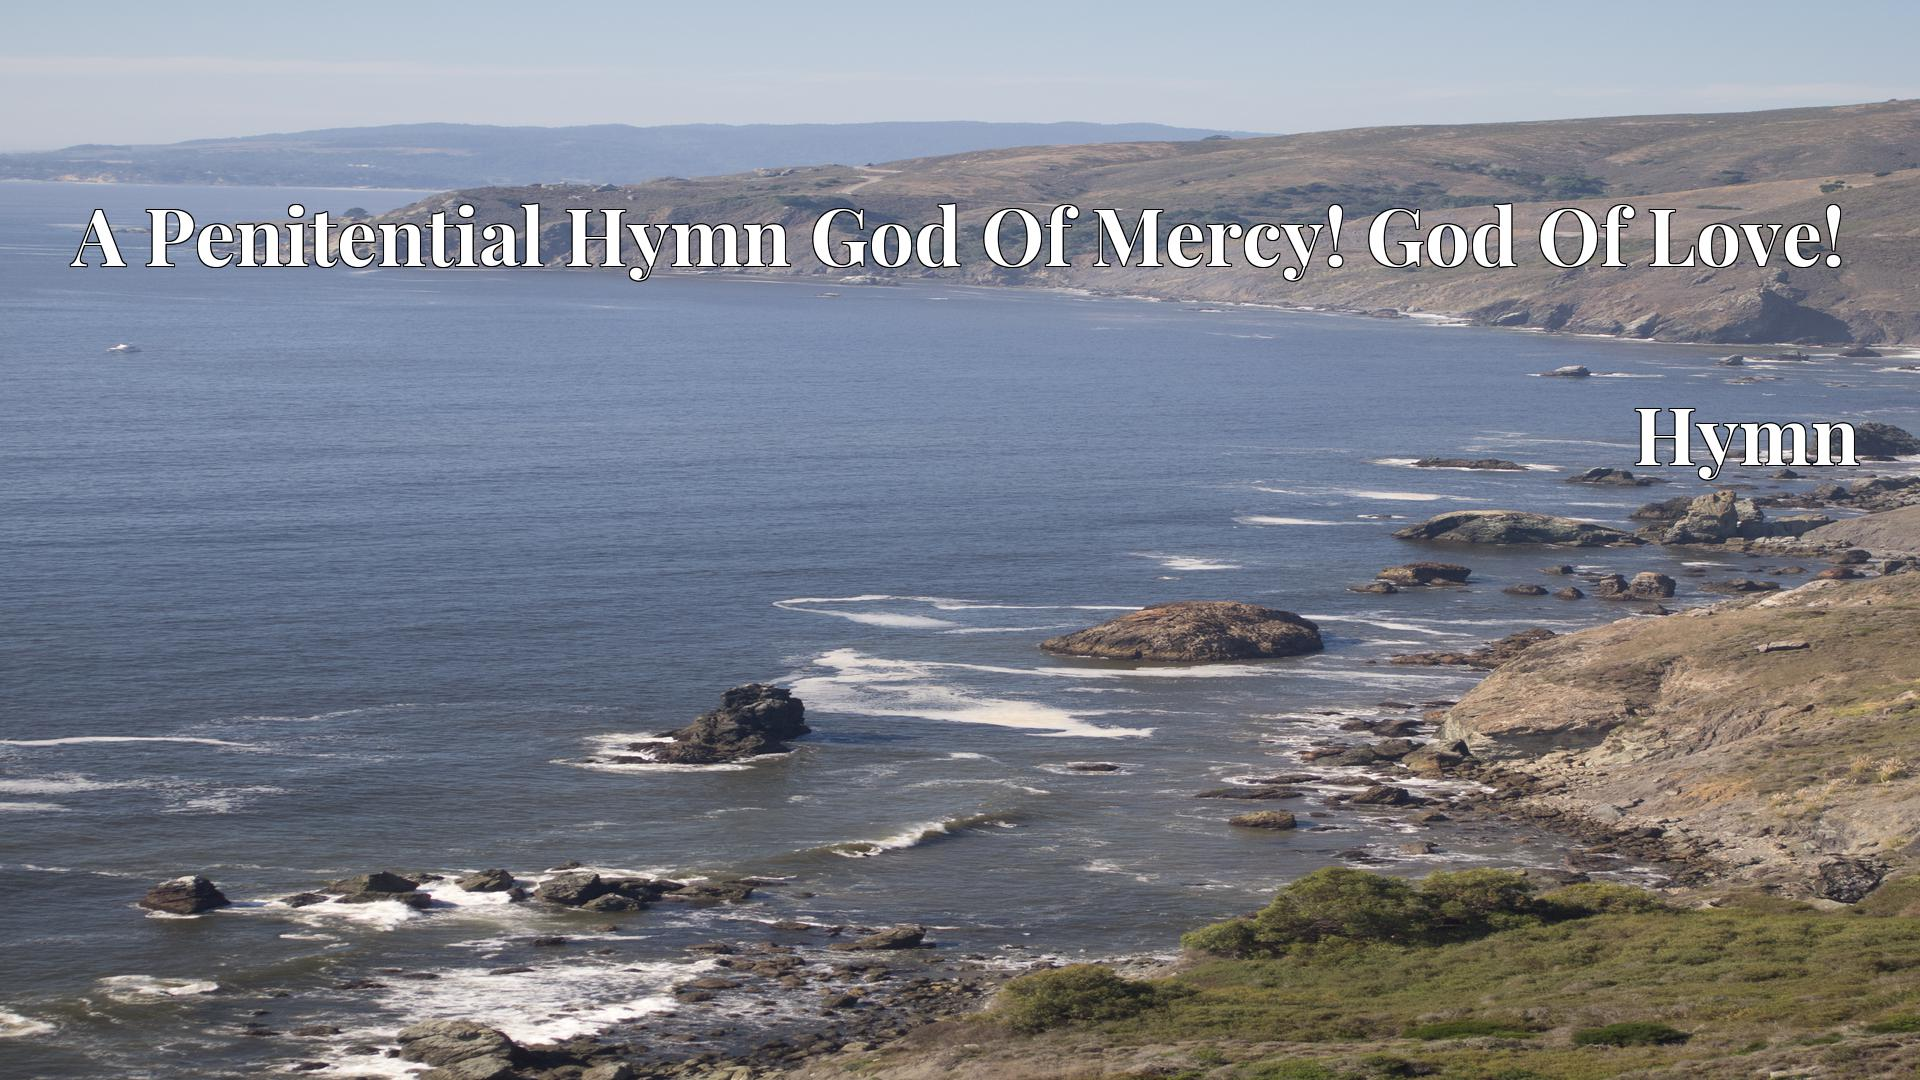 A Penitential Hymn God Of Mercy! God Of Love! - Hymn